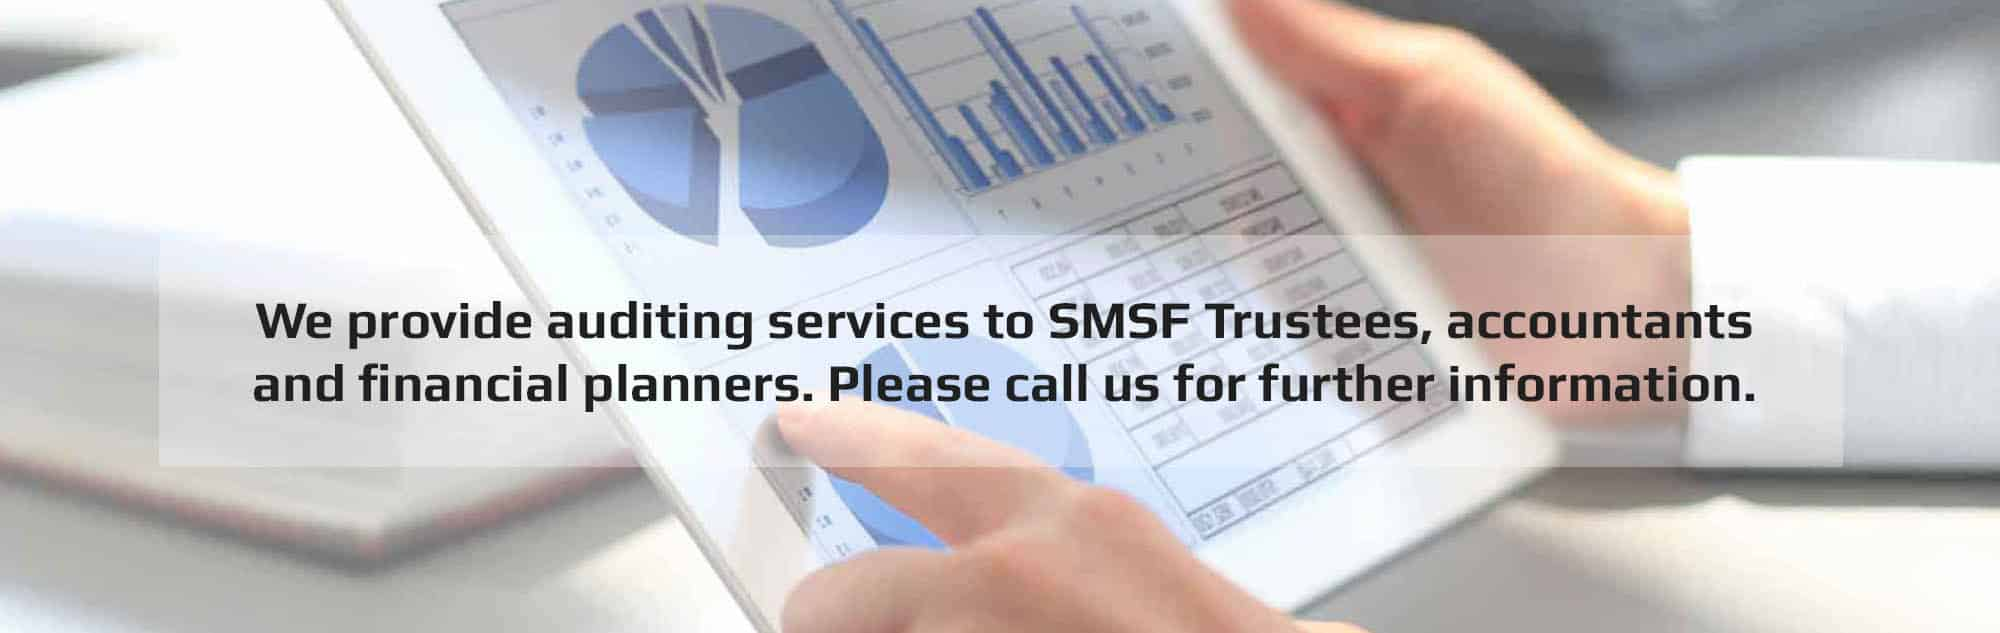 SMSF Auditing Services in Australia